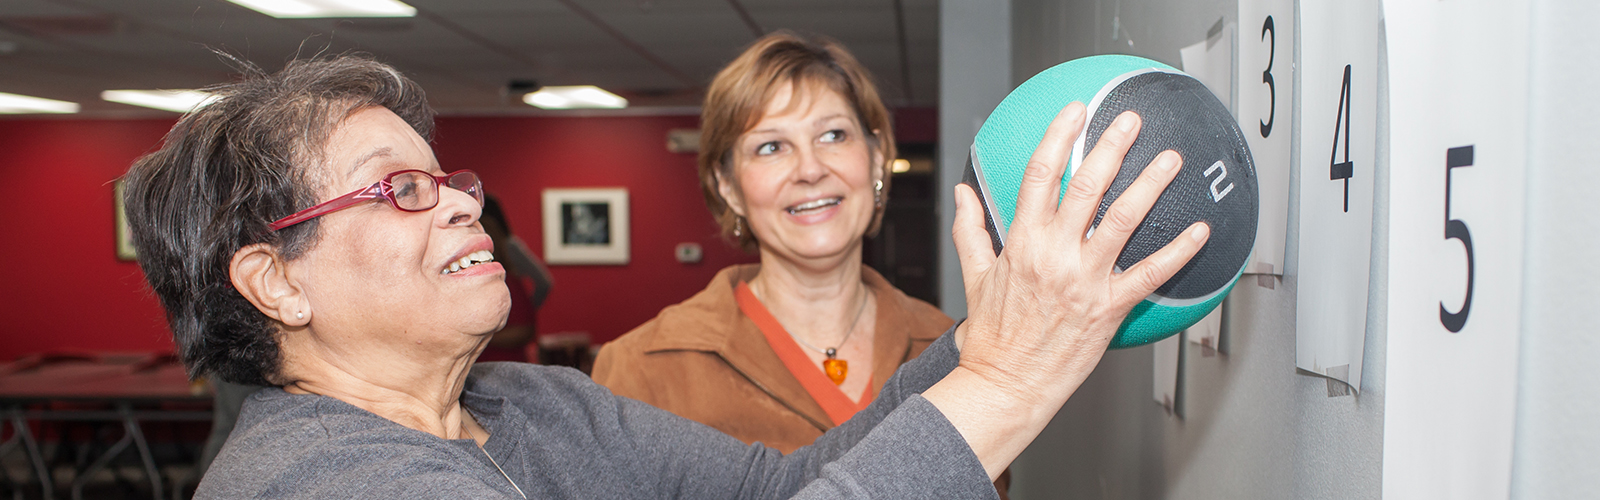 photo of an older adult participant in a fall prevention program